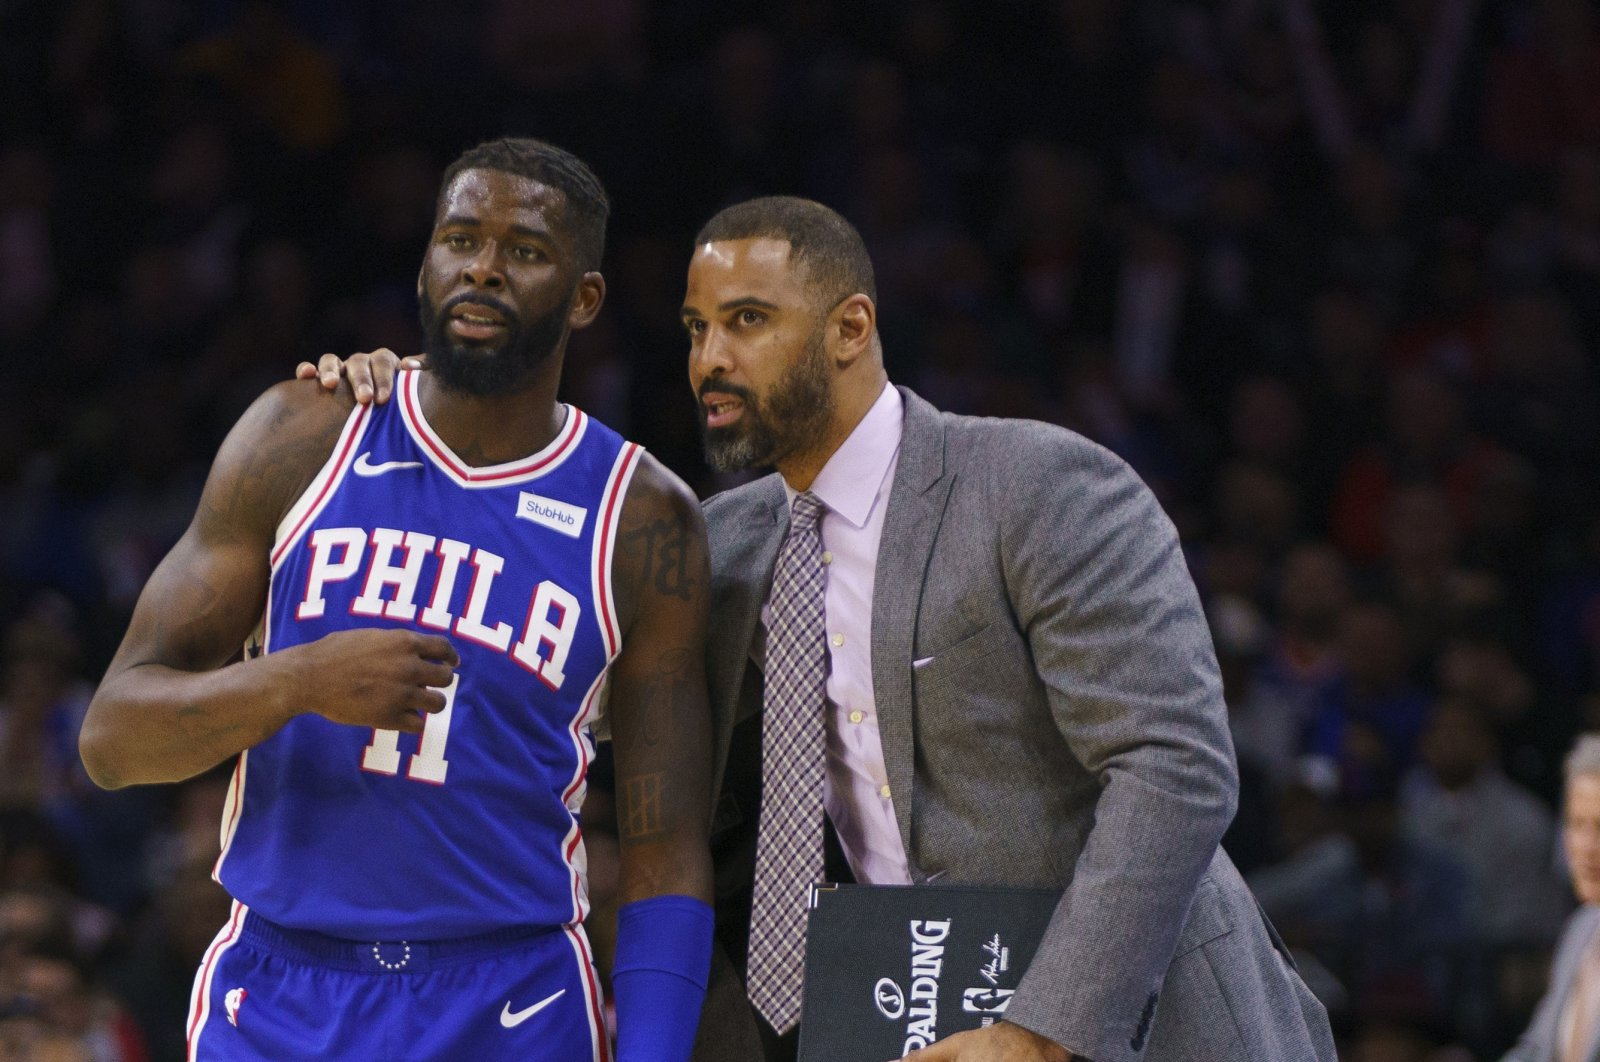 This file photo shows Philadelphia 76ers' James Ennis III (L) talking things over with assistant coach Ime Udoka (R) during the second half of an NBA basketball game against the New York Knicks, in Philadelphia, U.S., Nov. 20, 2019. (AP Photo)